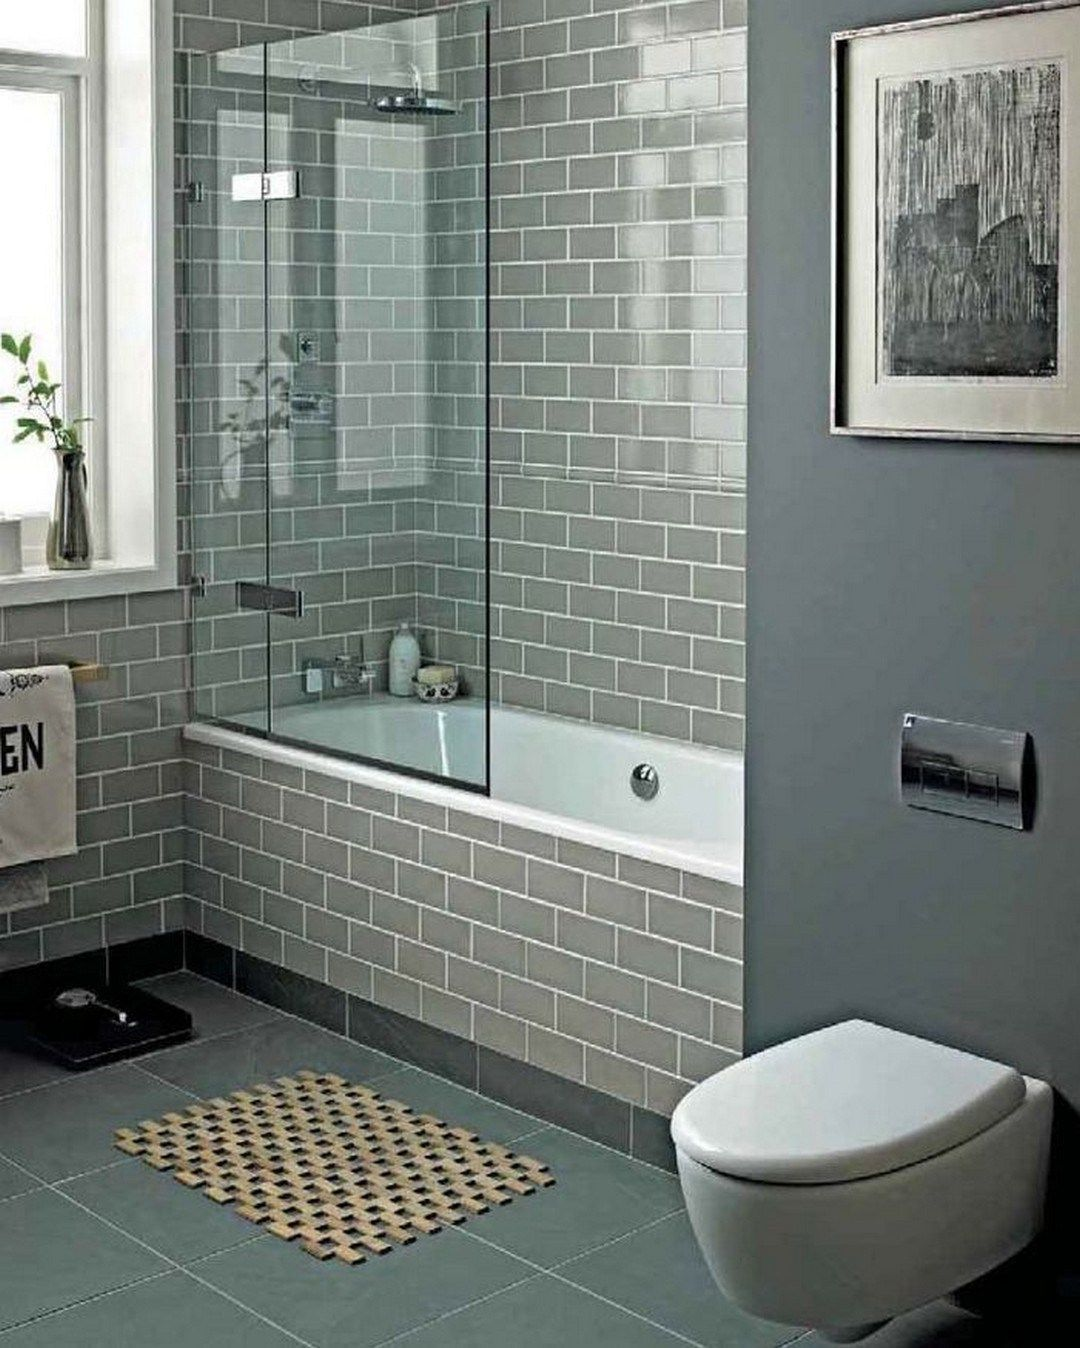 Groovy 11 Diy Bathroom Remodeling Ideas With Before After Home Interior And Landscaping Ologienasavecom